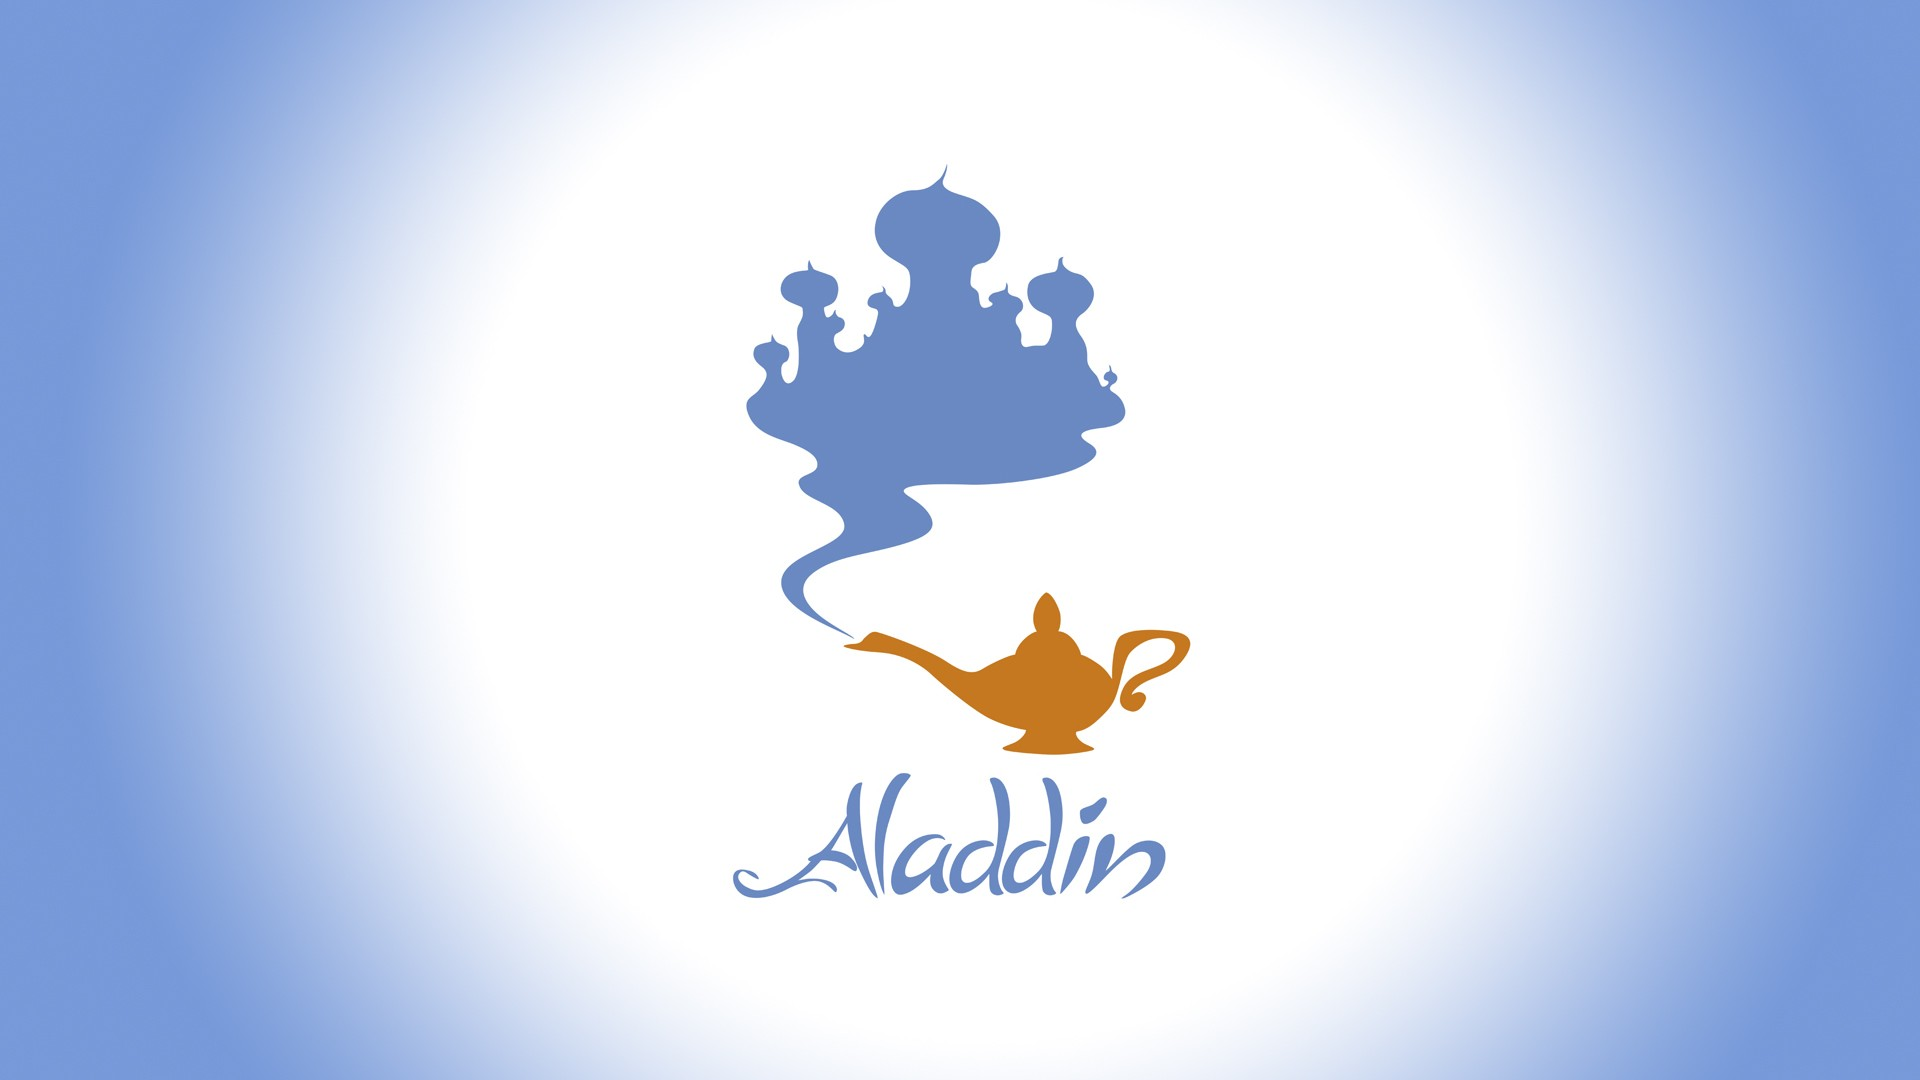 Aladdin Full HD Wallpaper and Background Image | 1920x1080 | ID:422398 for Aladdin Lamp Wallpaper  45ifm